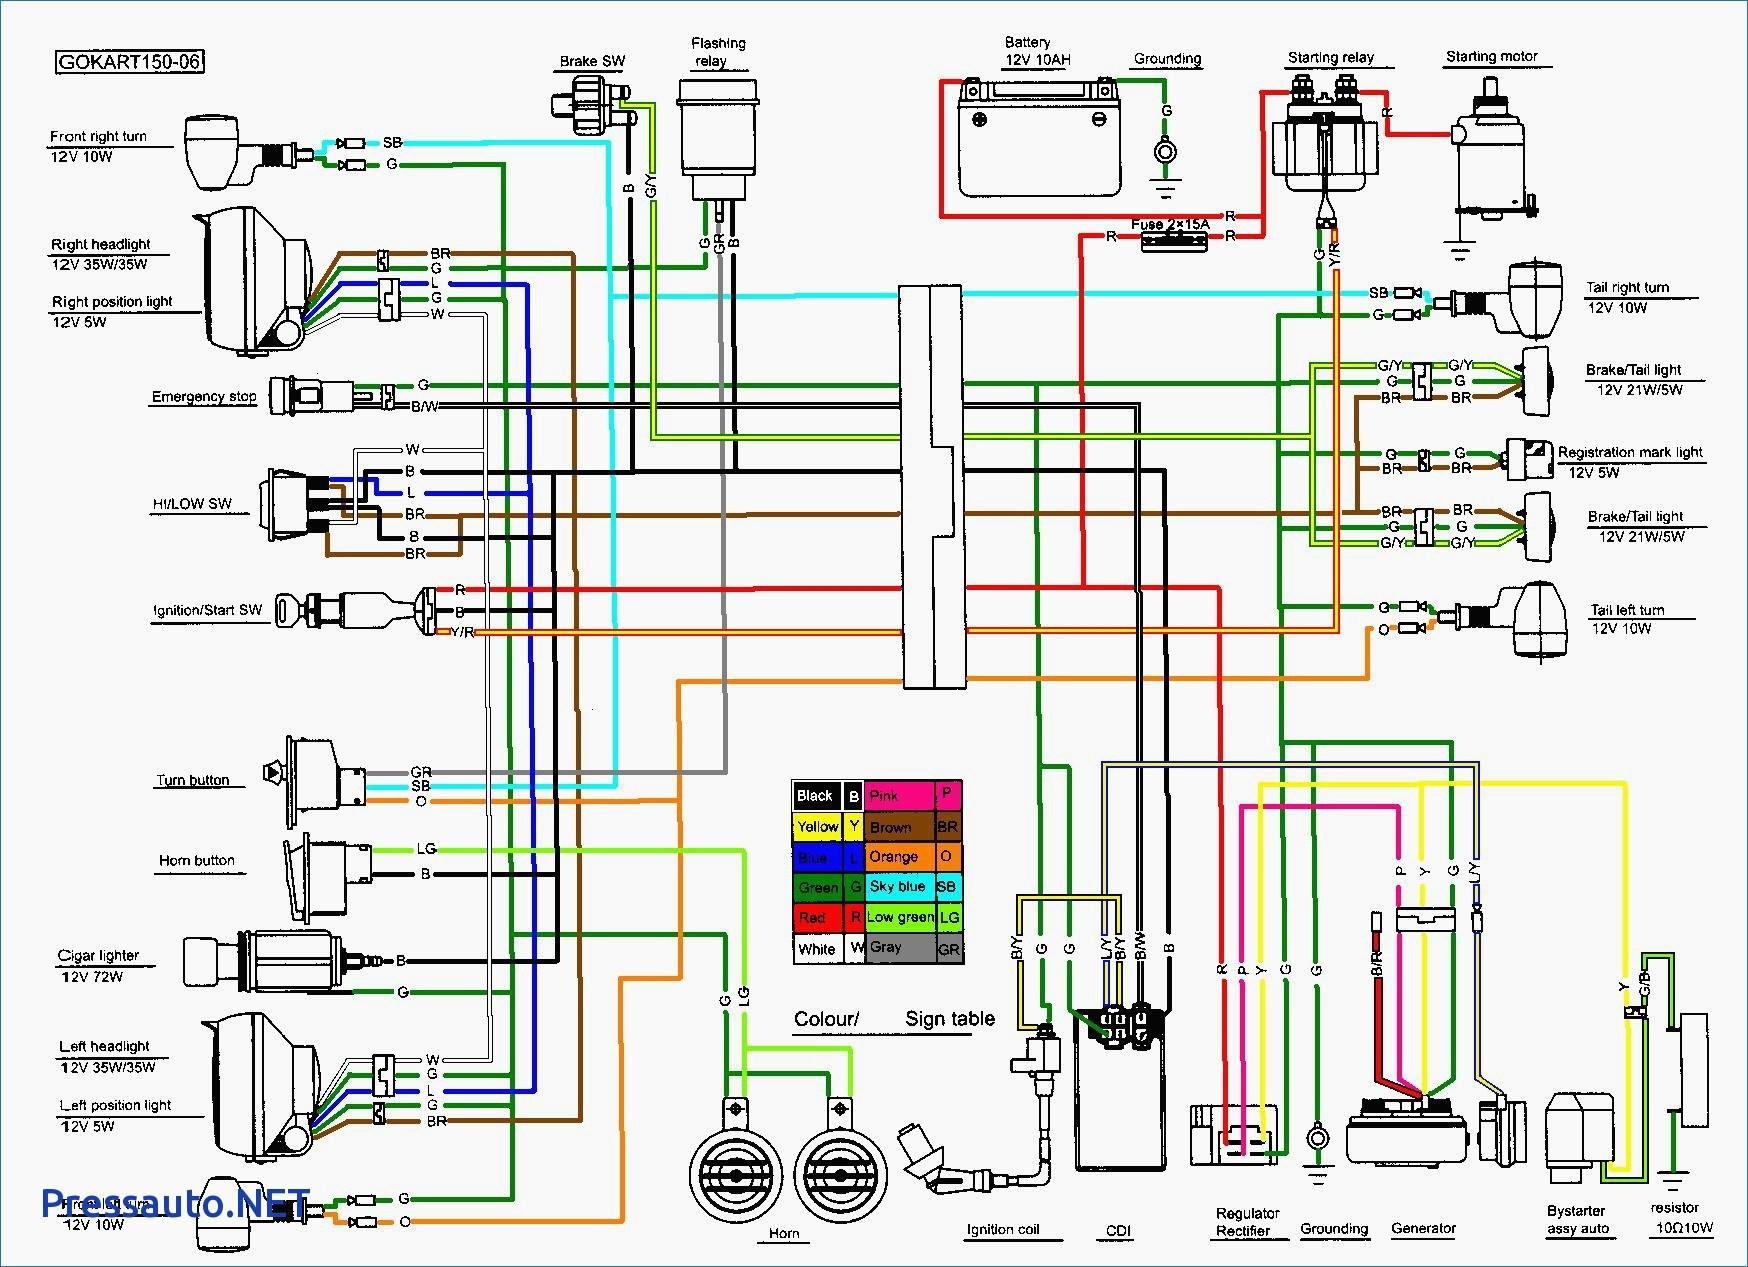 Taotao Wiring Harness Diagram - Wiring Diagrams Click - Quality Trailer Wiring Diagram